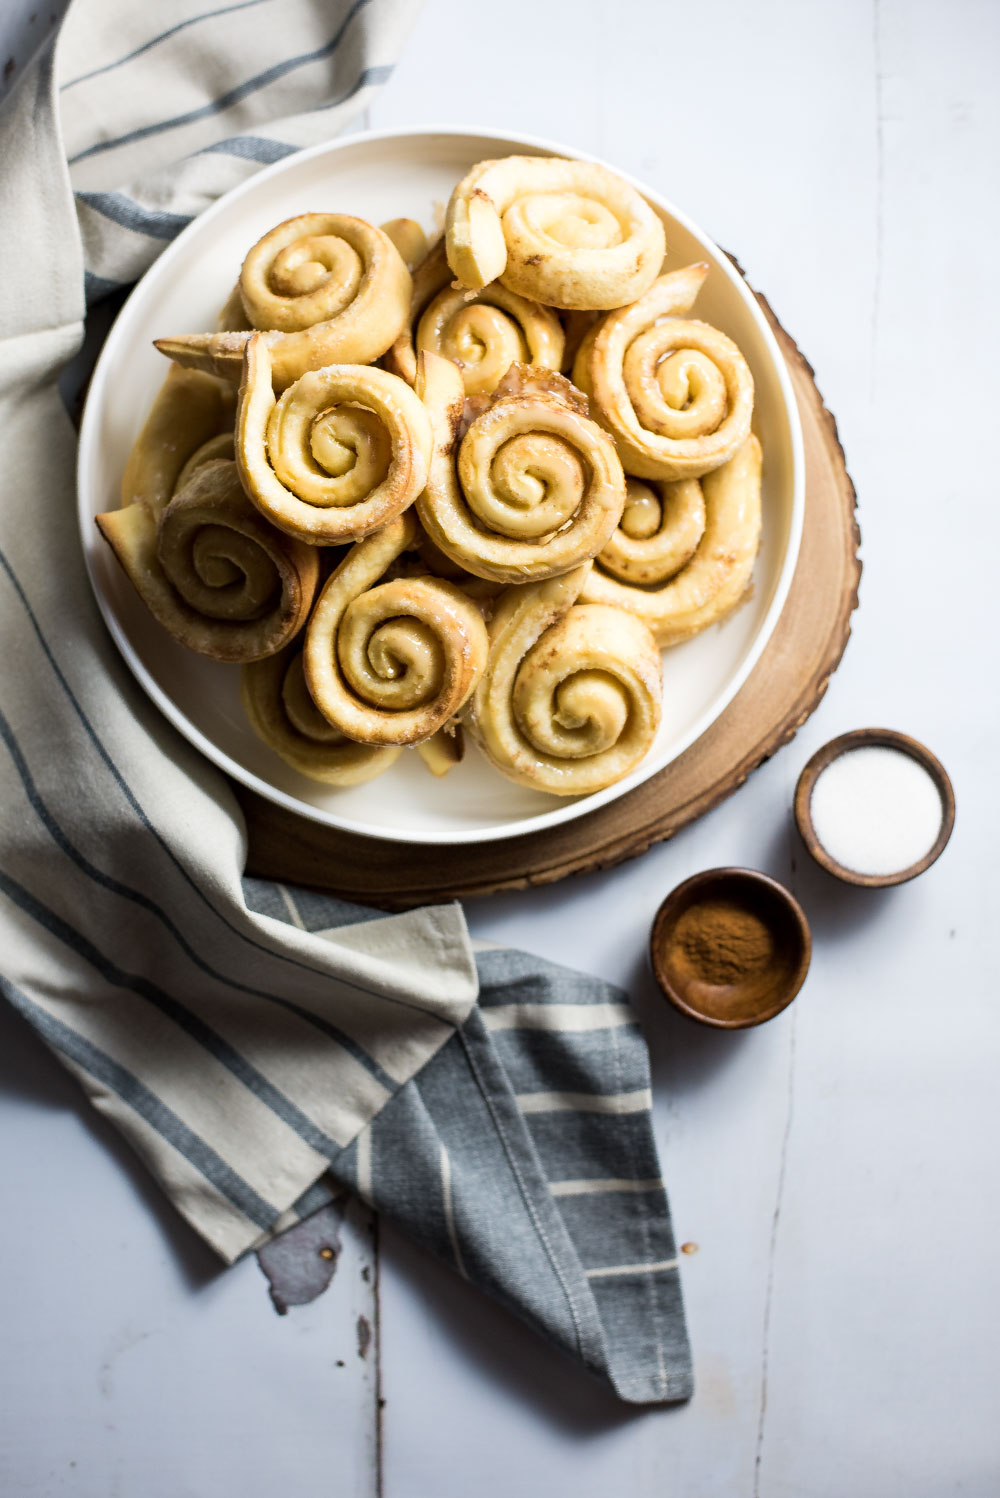 If you are a lover of homemade honey buns and love big and bold spices, these homemade cardamom honey buns are what you need for a relaxing Sunday morning!